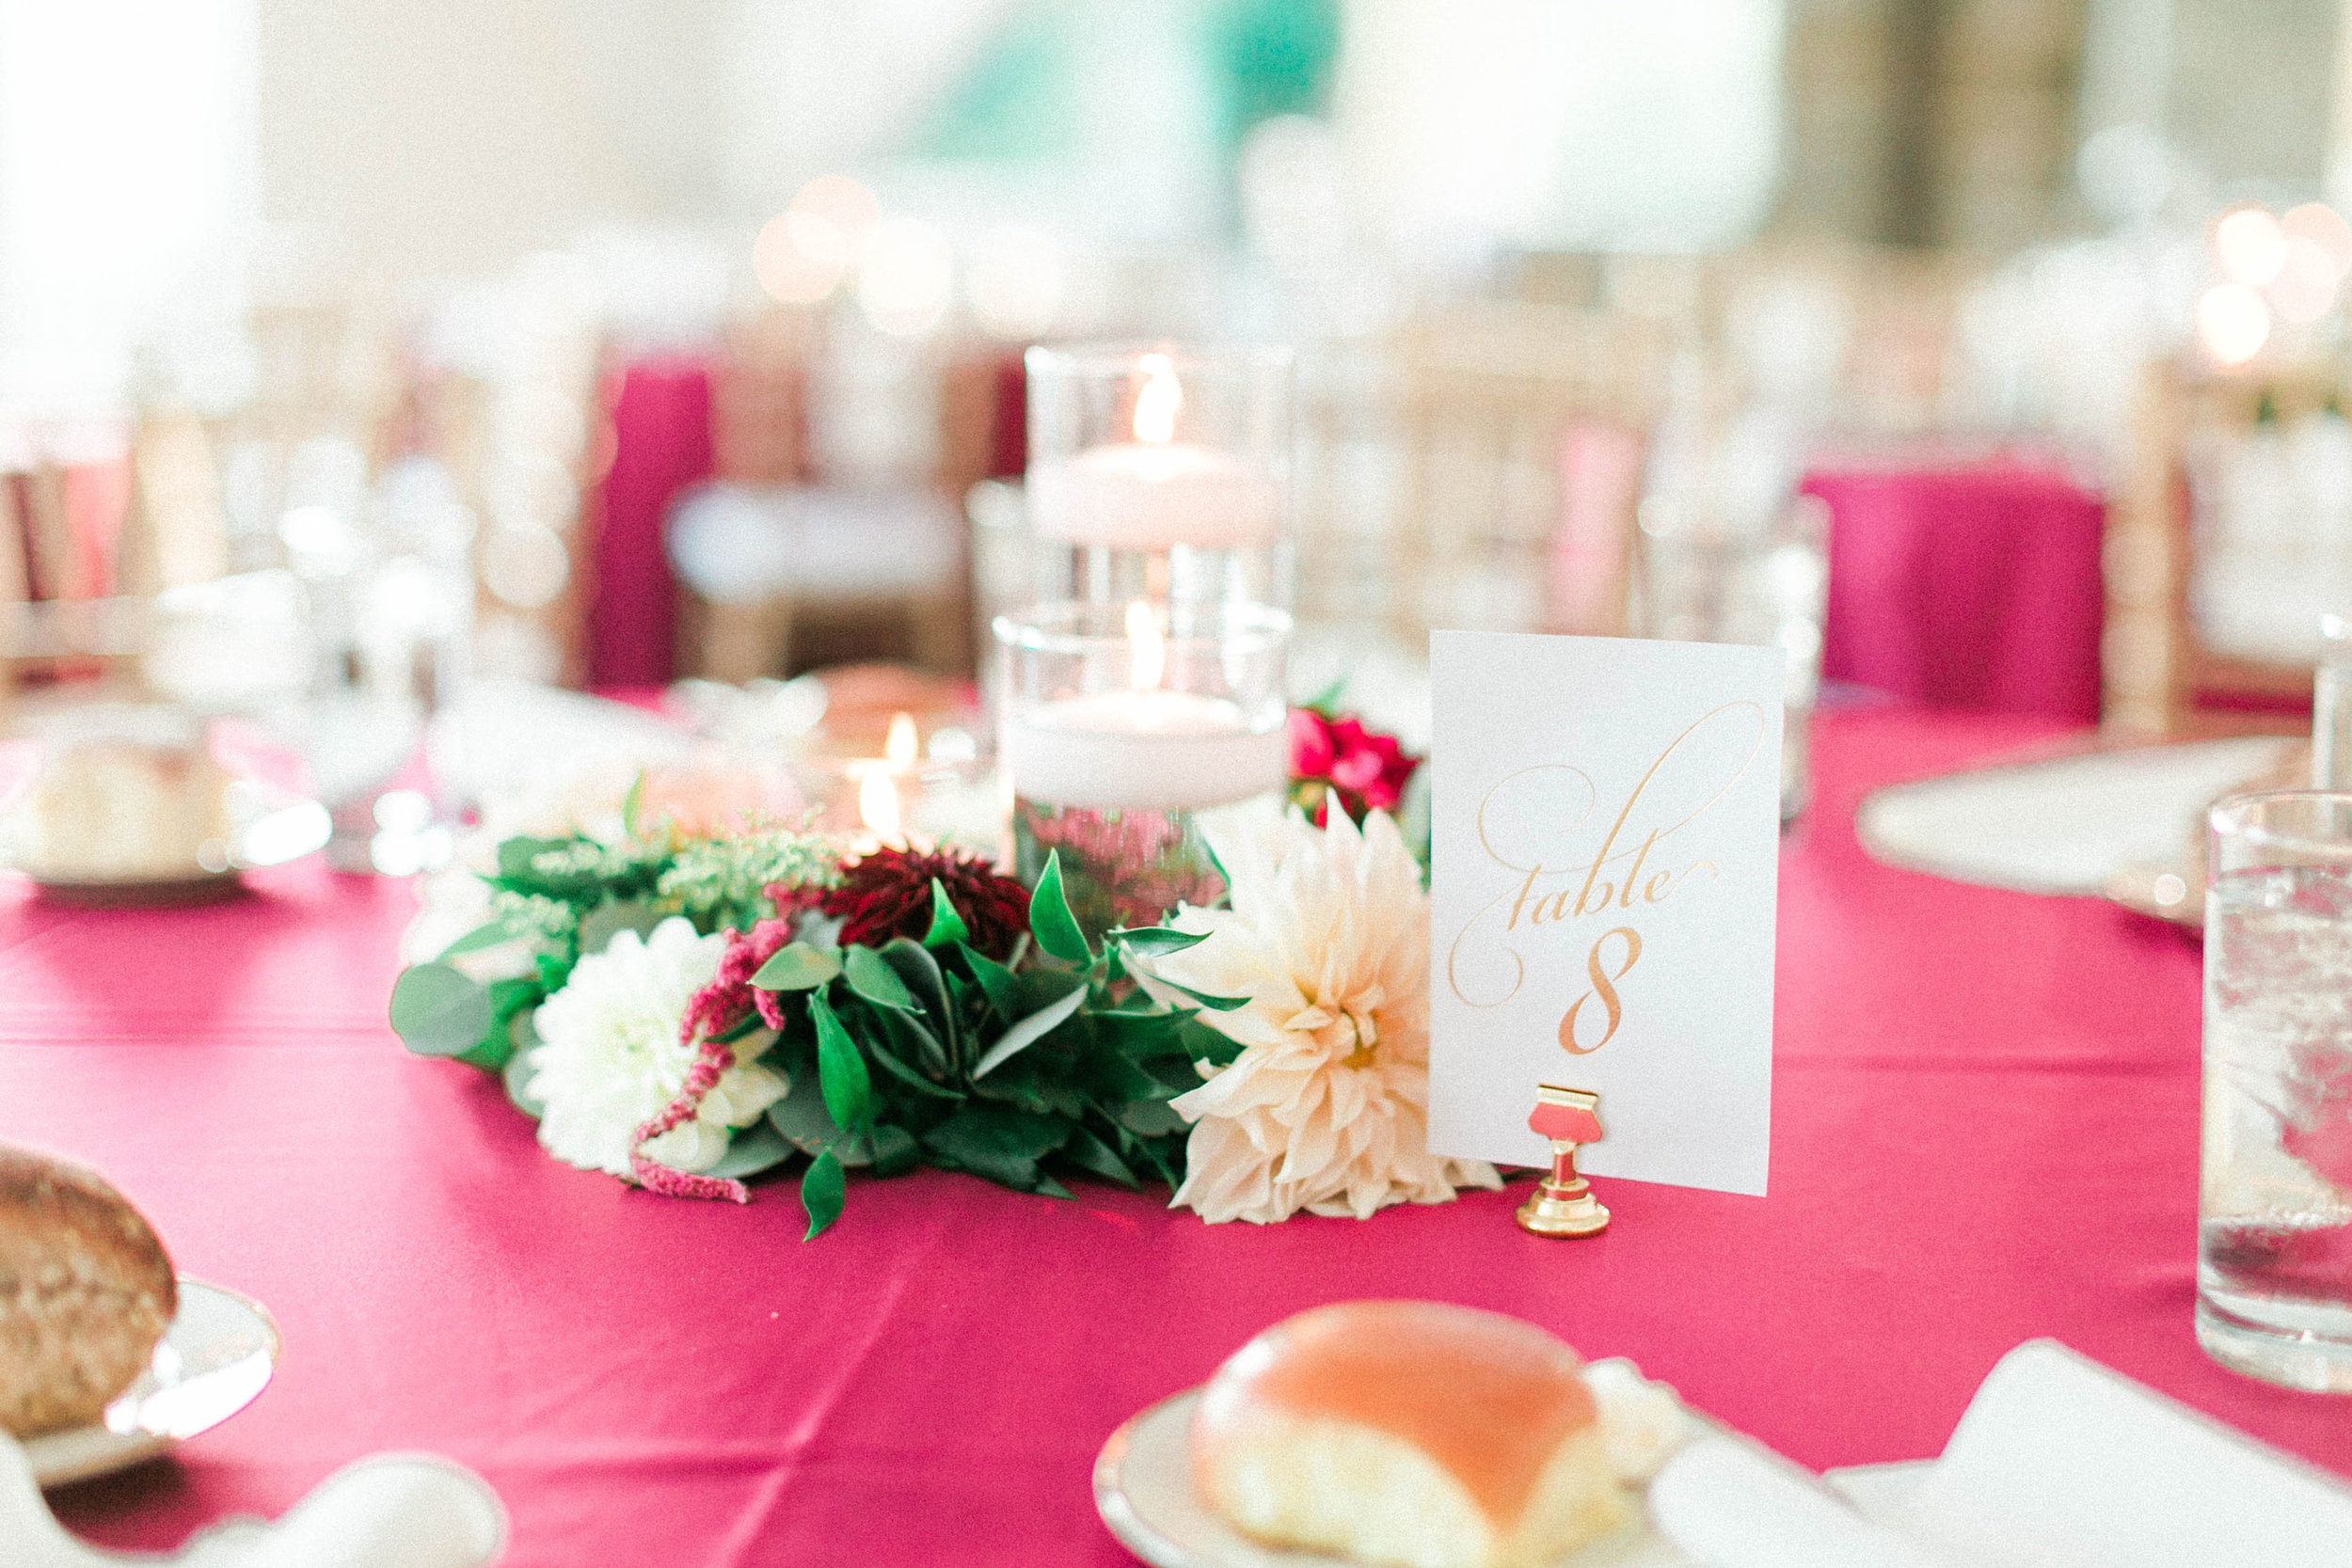 Another trend for centerpieces lately: These are thing garlands circling three pillar or floating candles. This adds color and life to the table without blocking anyone's view.